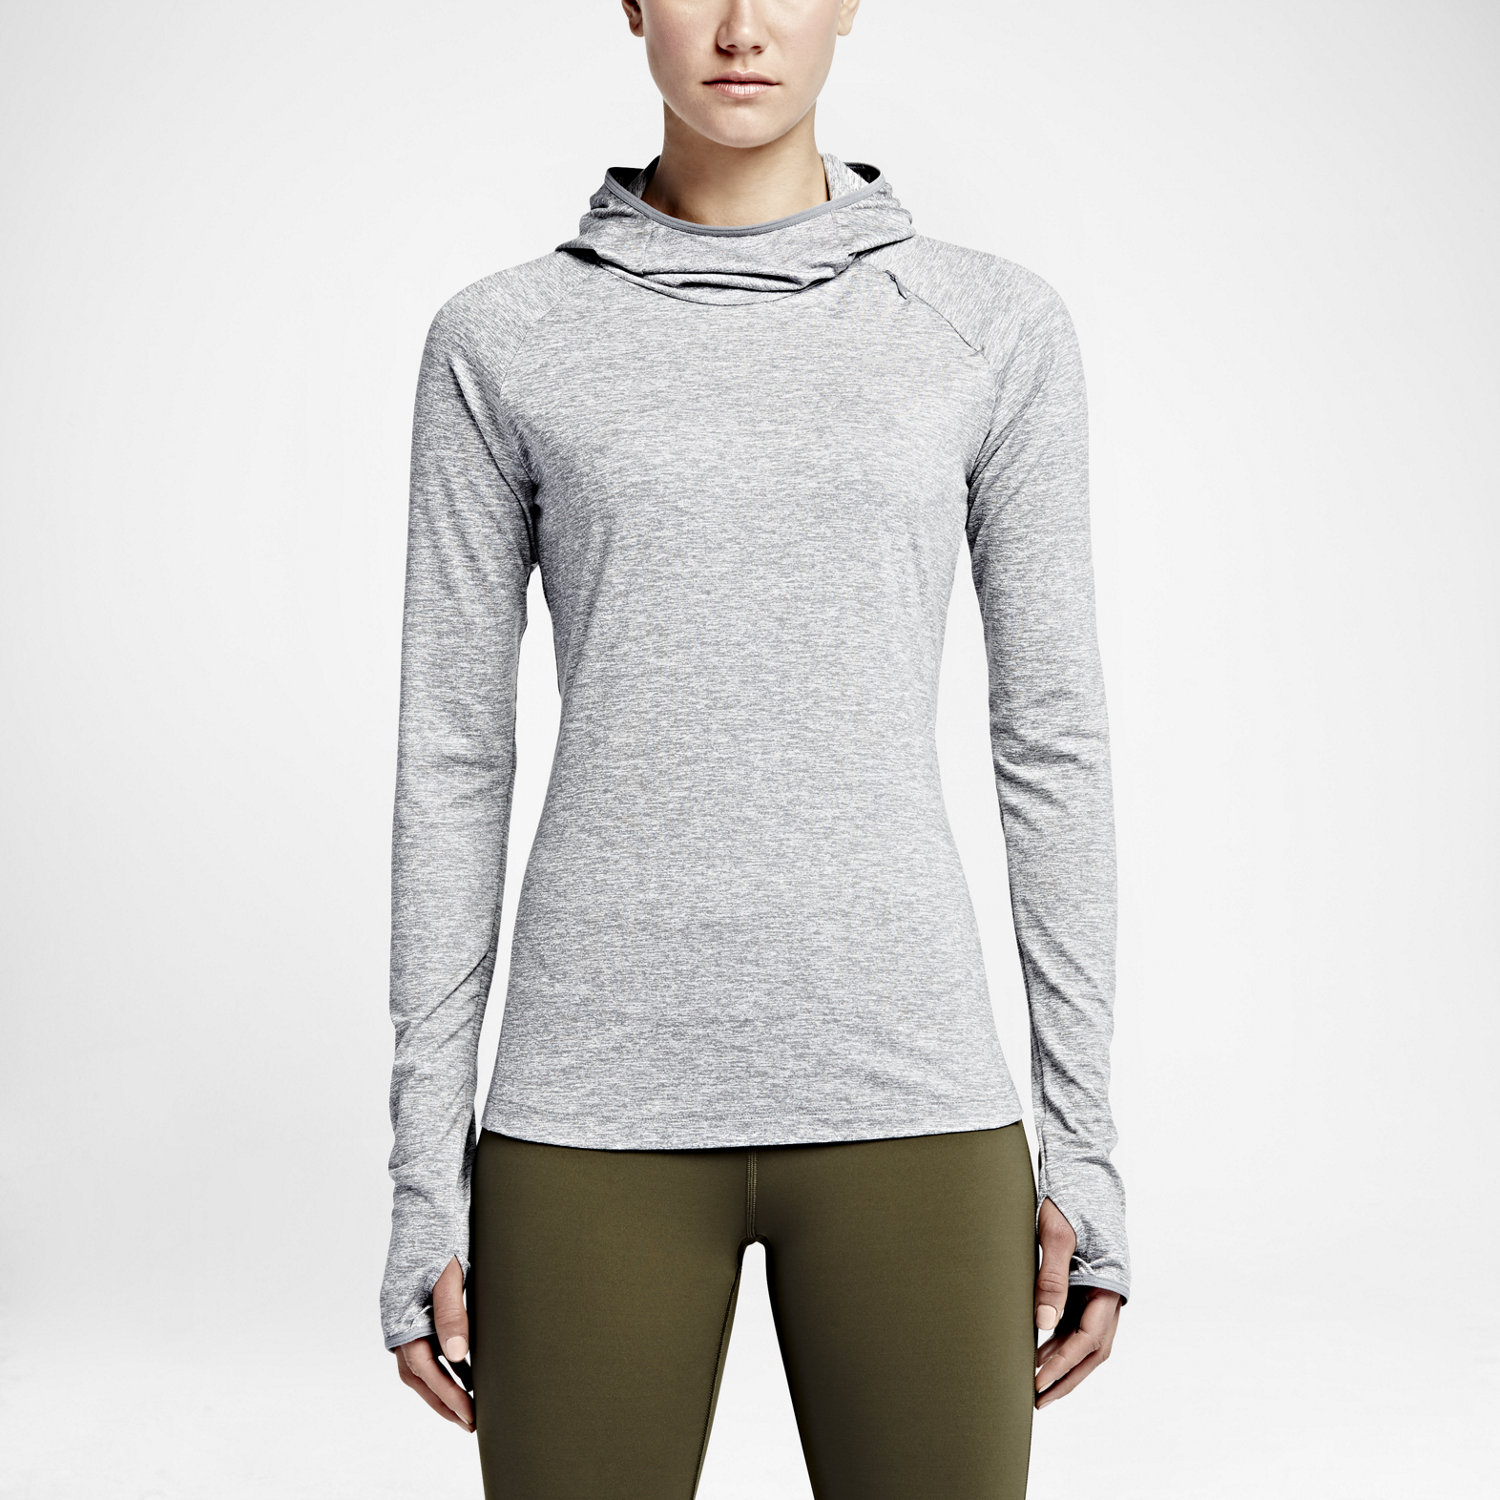 Women's Hoodies & Sweatshirts. Nike.com